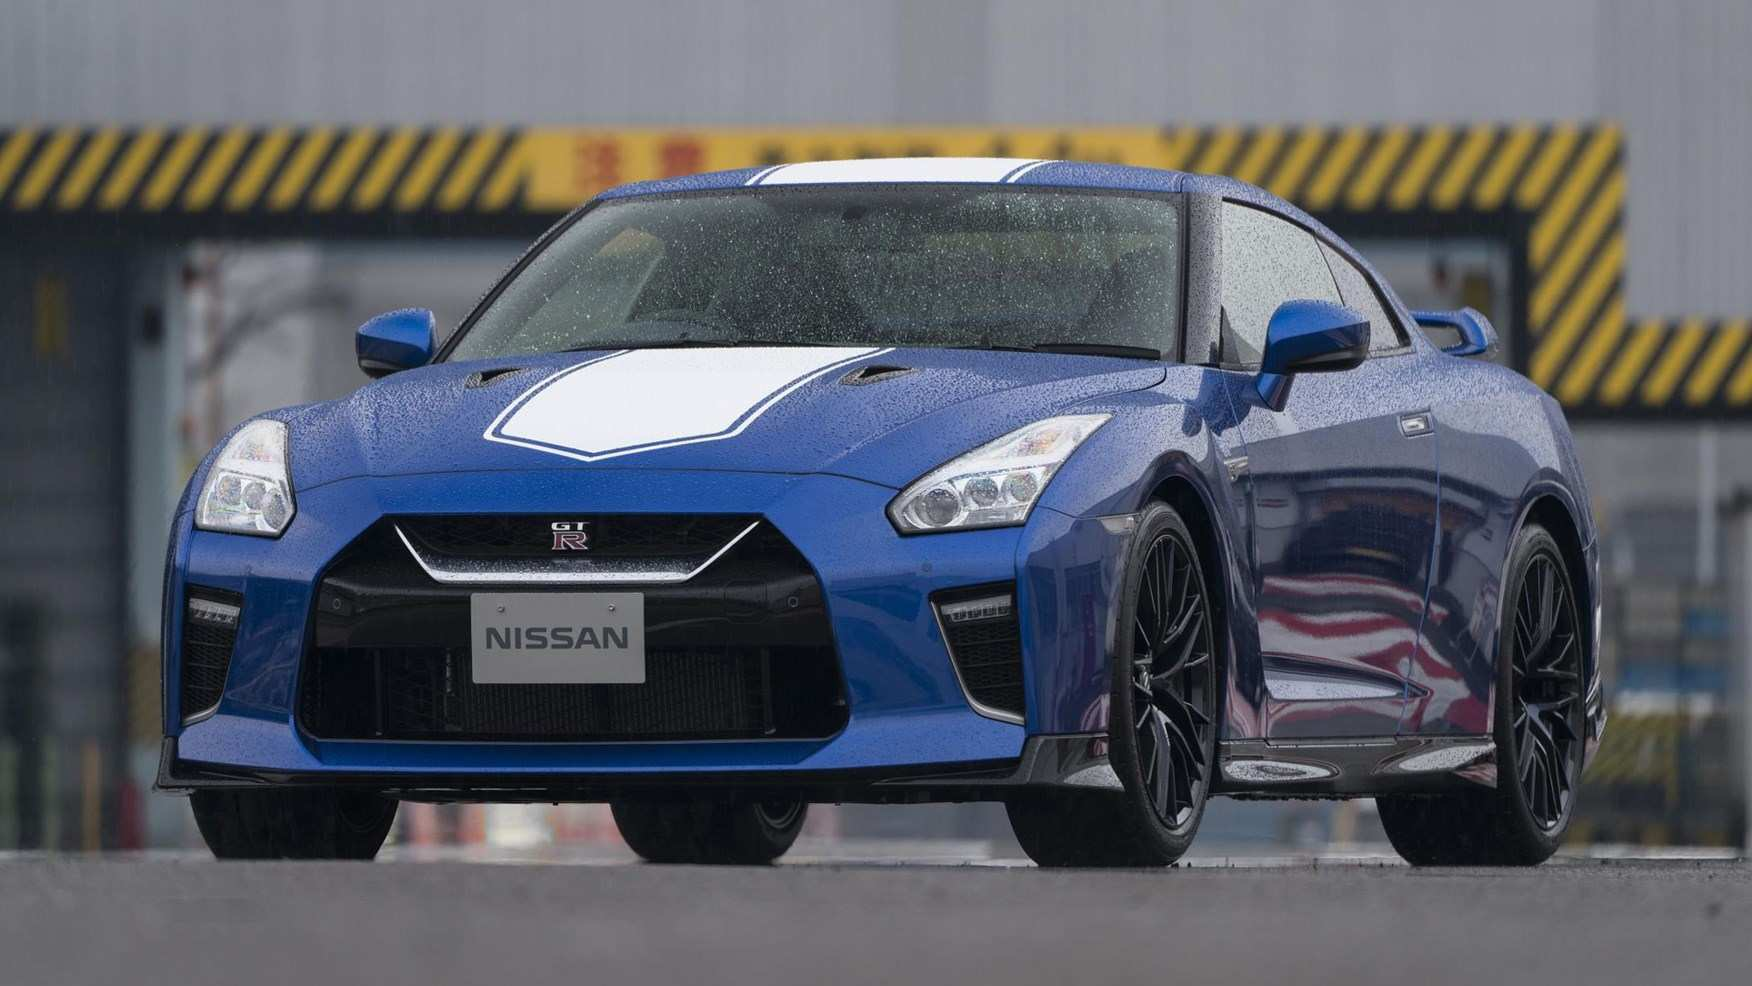 28 Great Nissan Gtr 2020 Price Reviews with Nissan Gtr 2020 Price